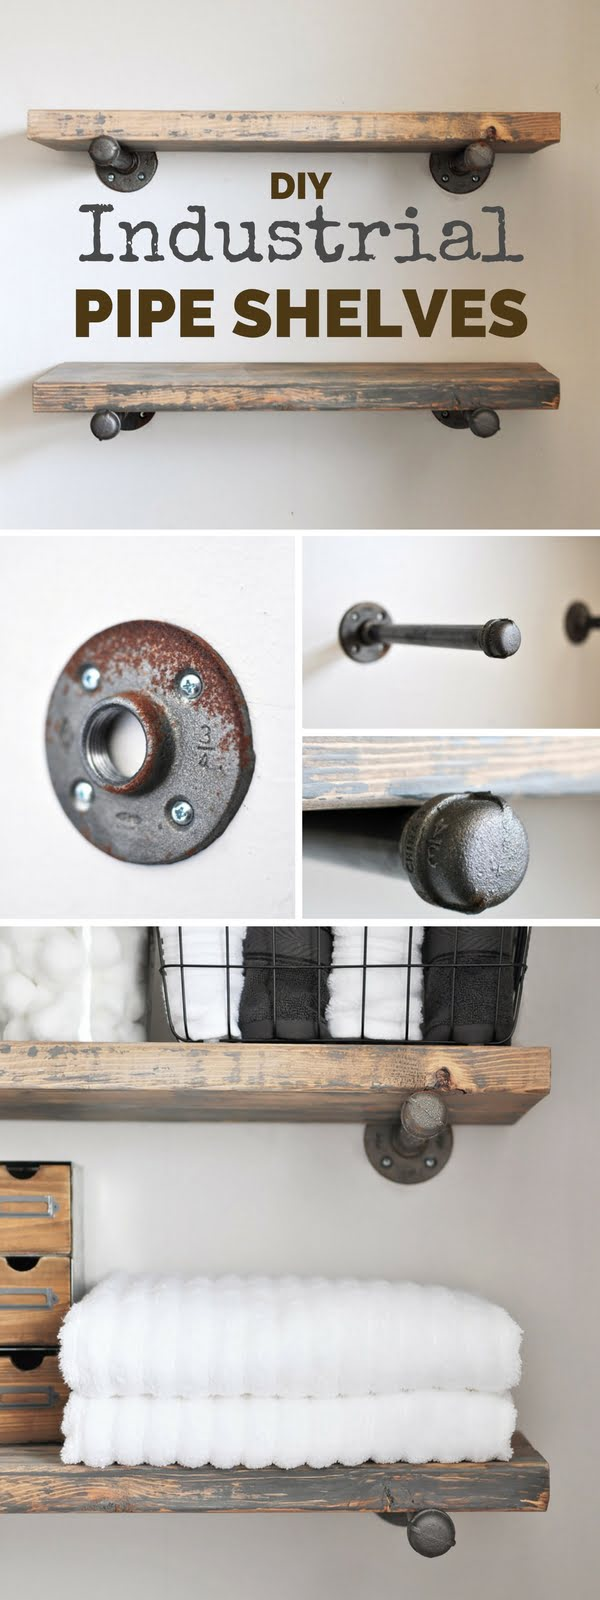 Check out the tutorial: #DIY Industrial Pipe Shelves